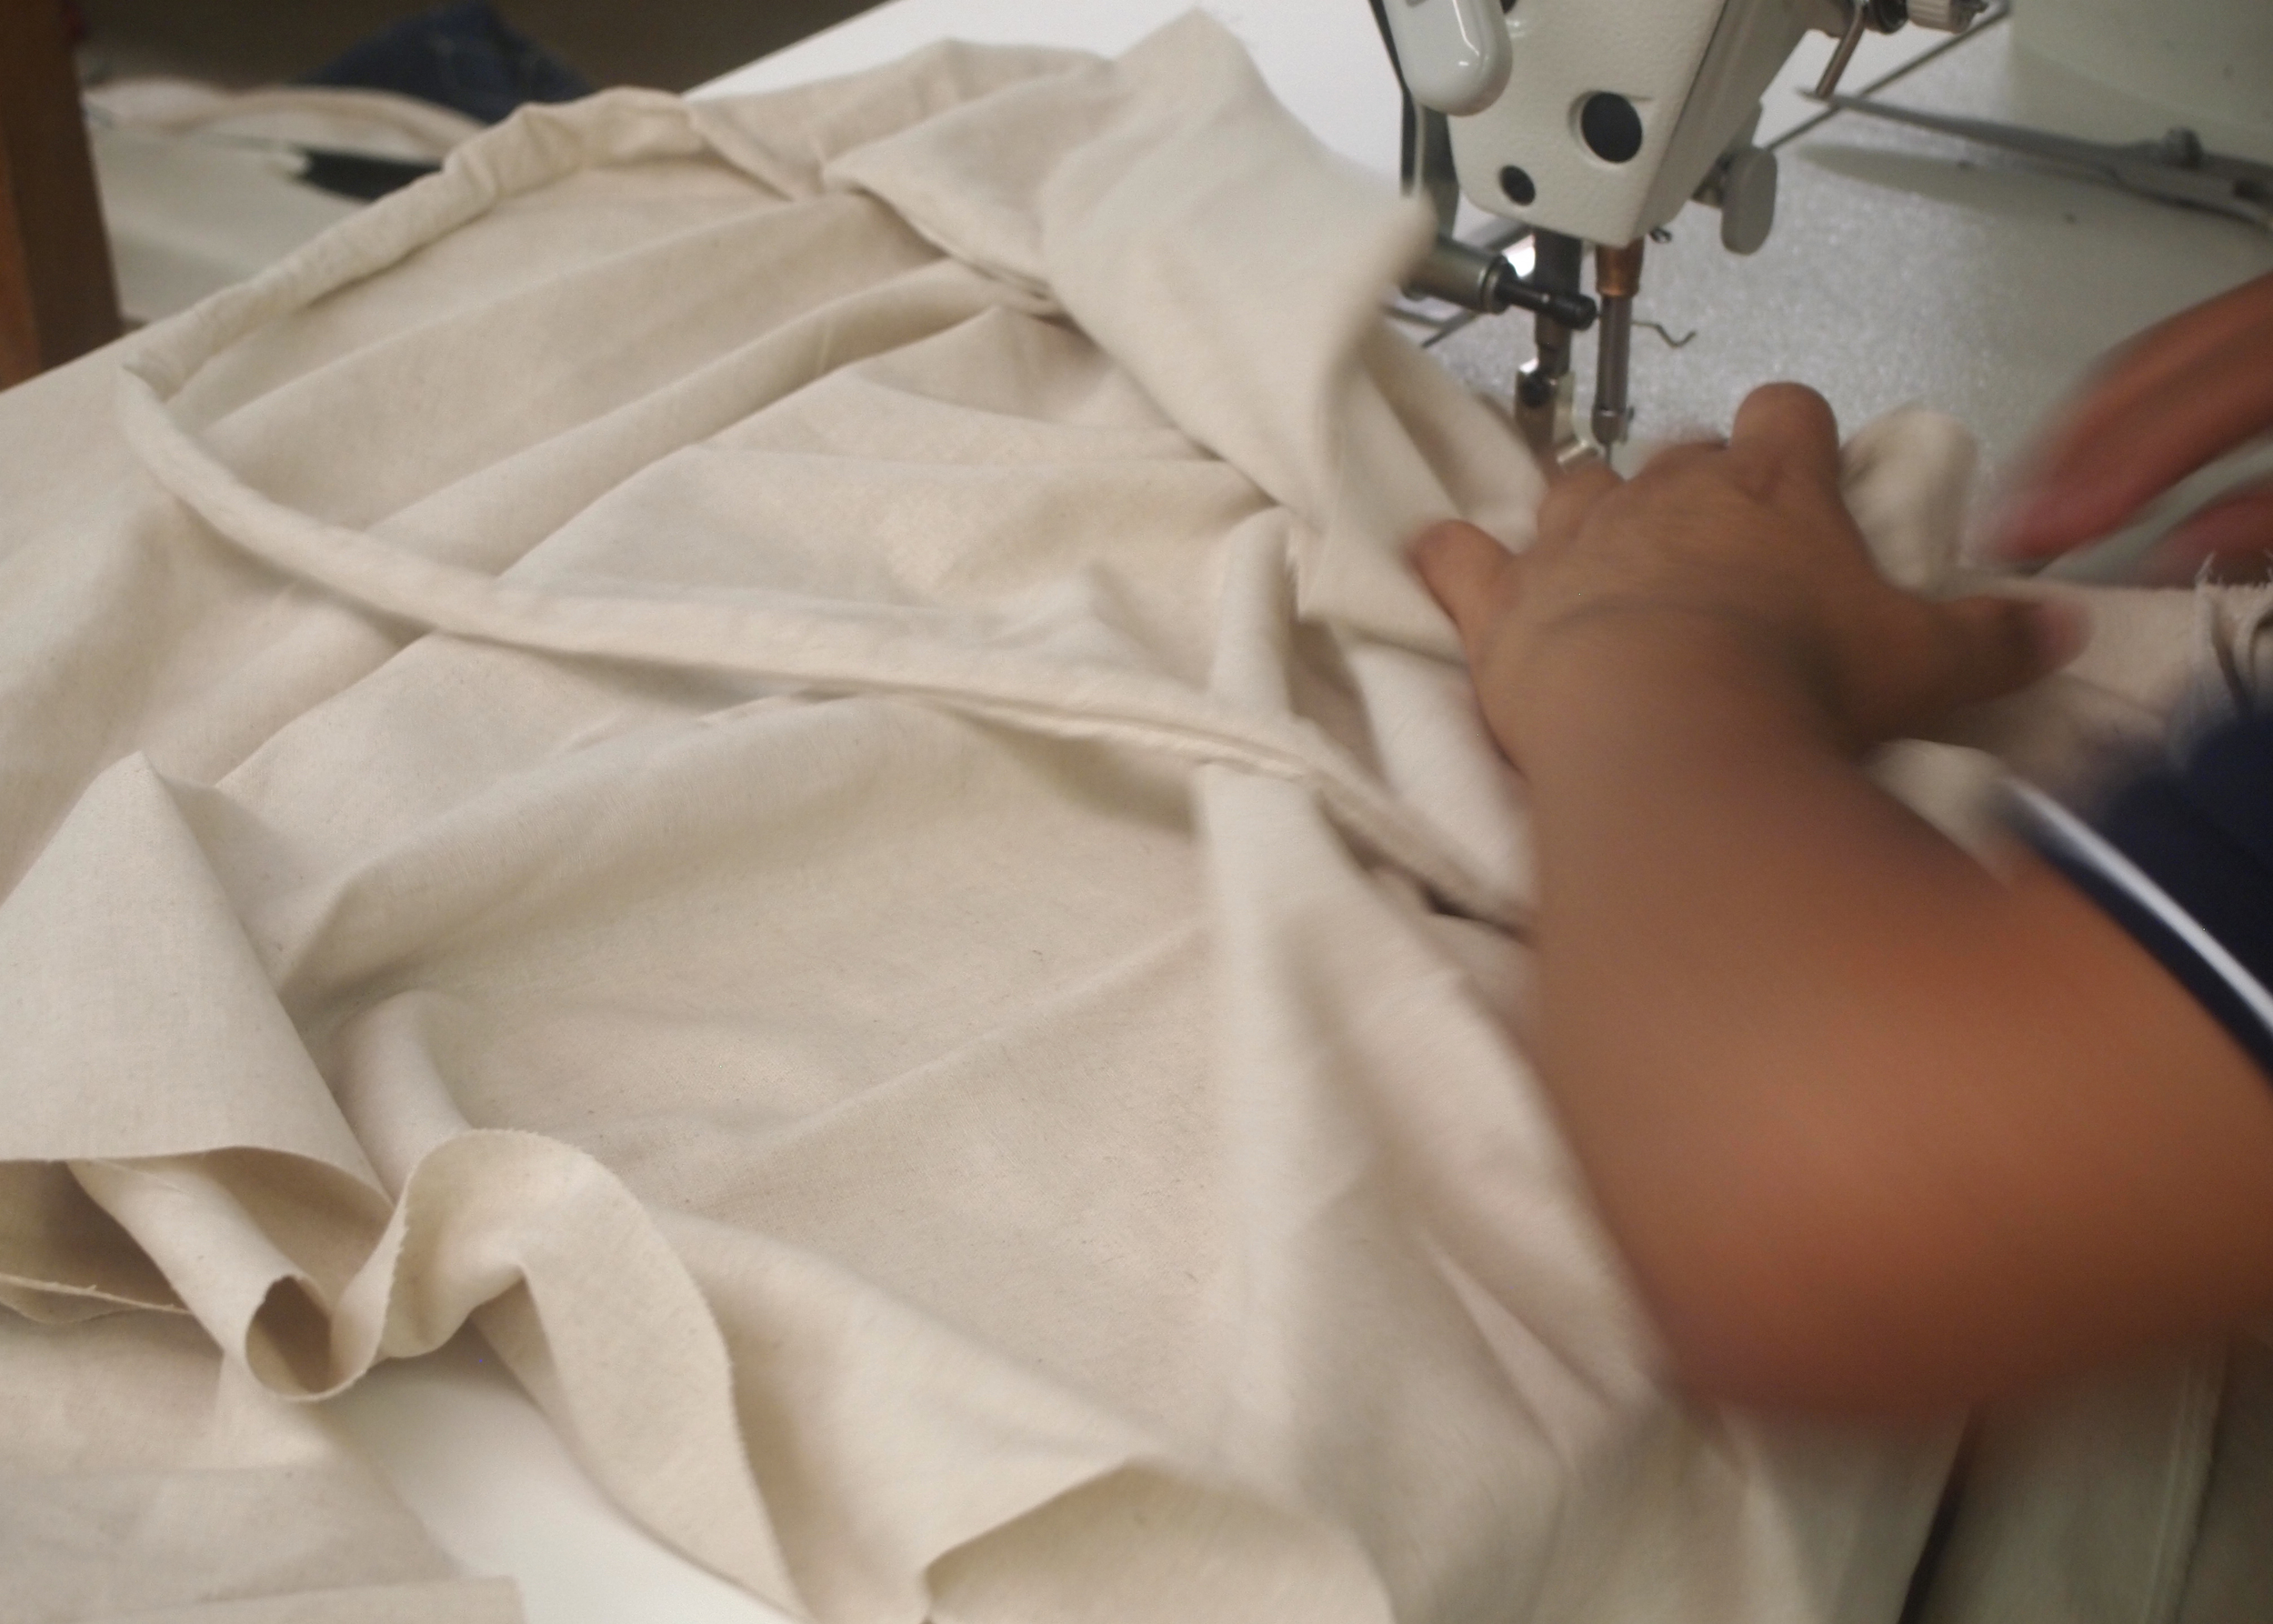 A sewer at Opportunity Threads stitching the waistband to the skirt of the Bicycle Wrap Skirt.